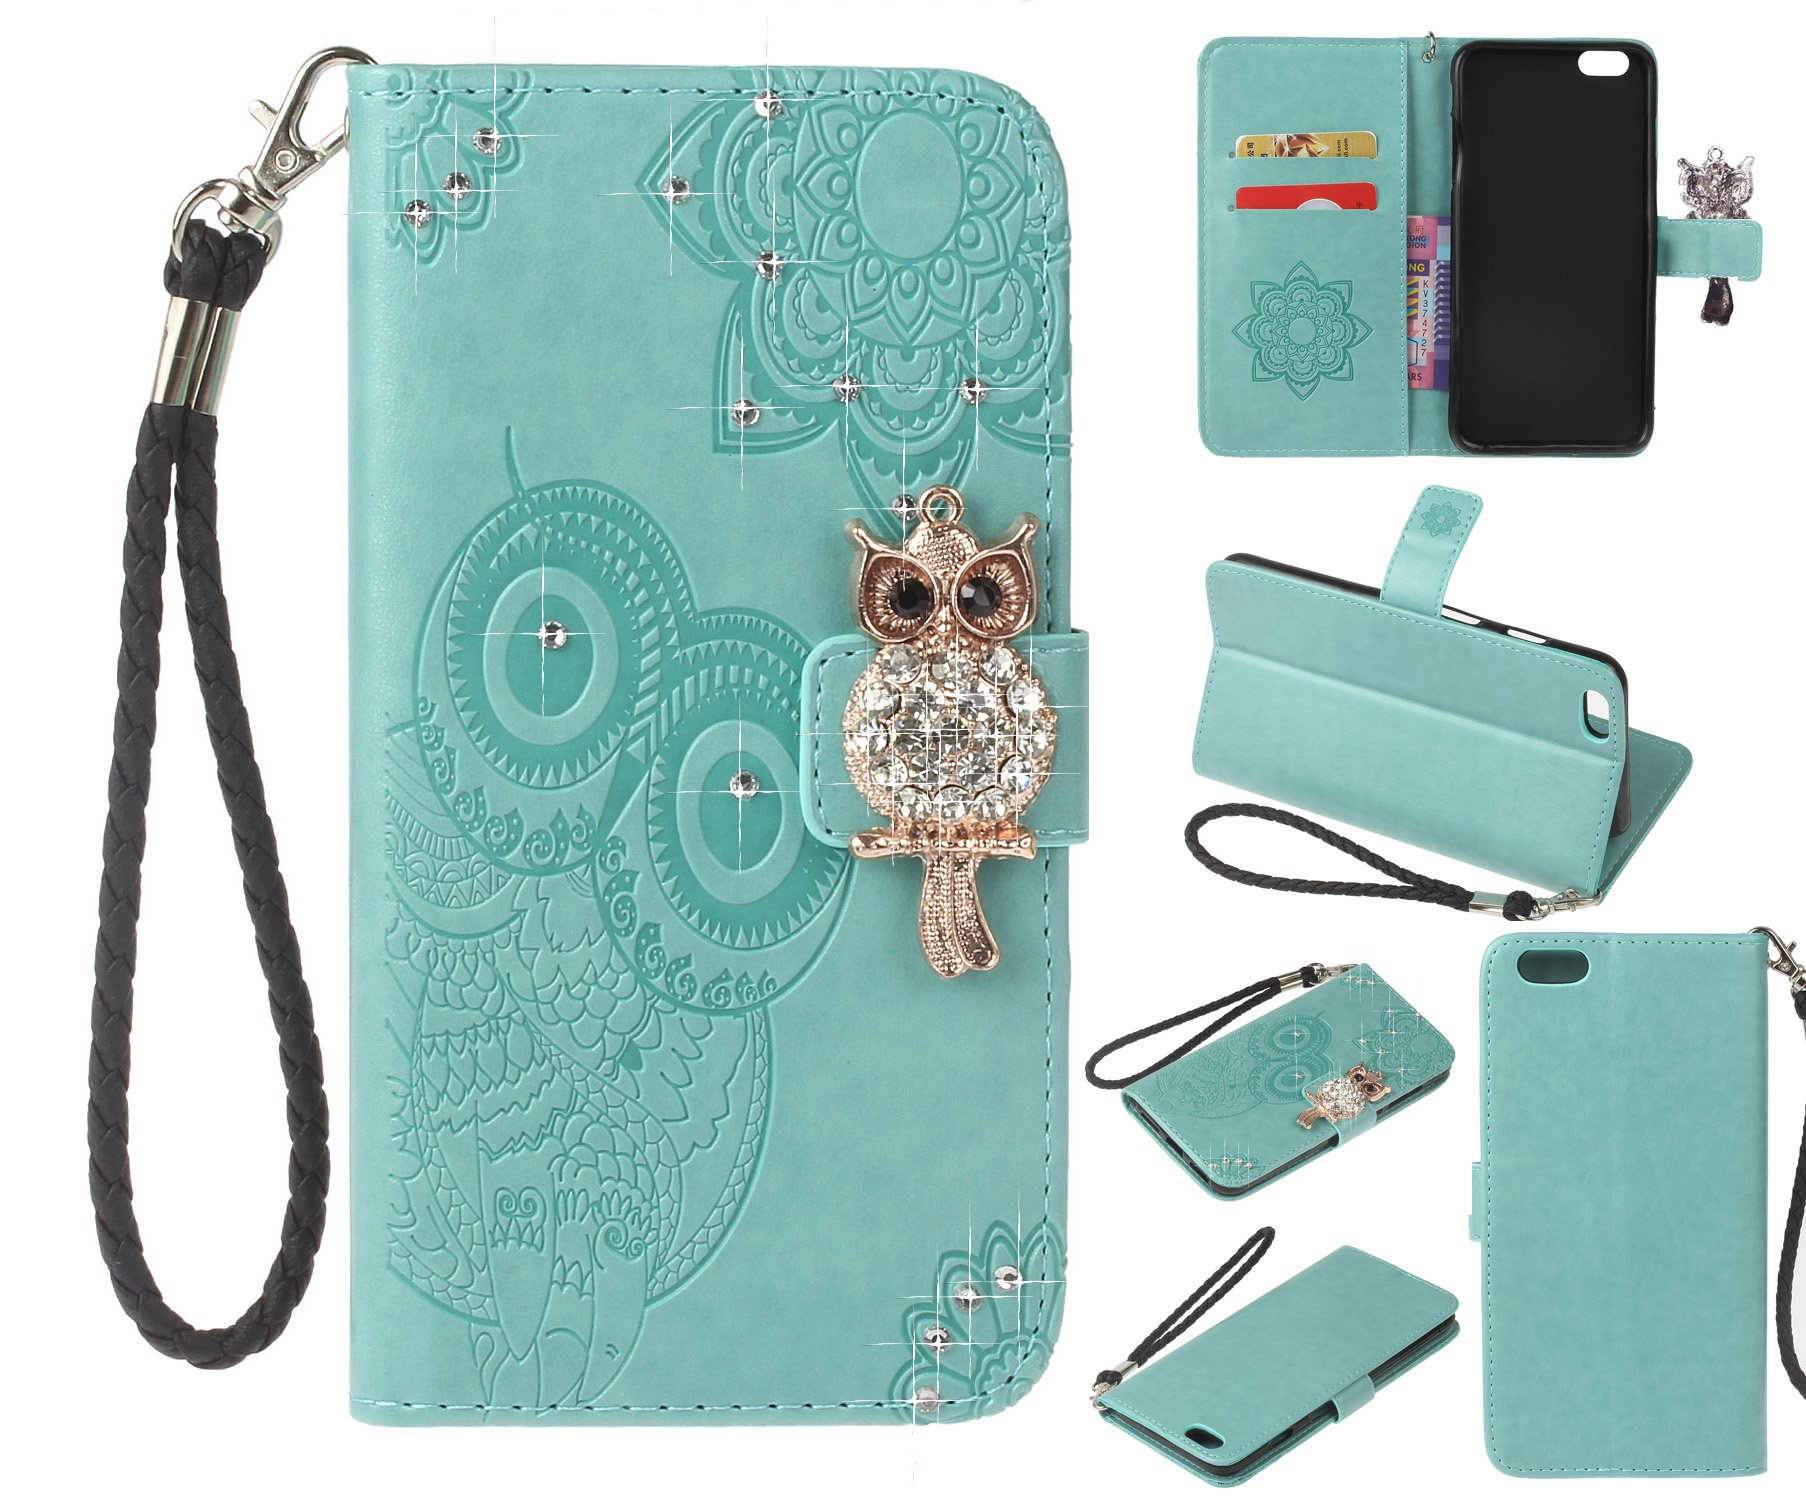 Amocase Wallet Case with 2 in 1 Stylus for iPhone 6s,3D Bling Gems Owl Magnetic Mandala Embossing Premium Strap PU Leather Card Slot Stand Case for iPhone 6/6s 4.7 inch - Mint Green by Amocase